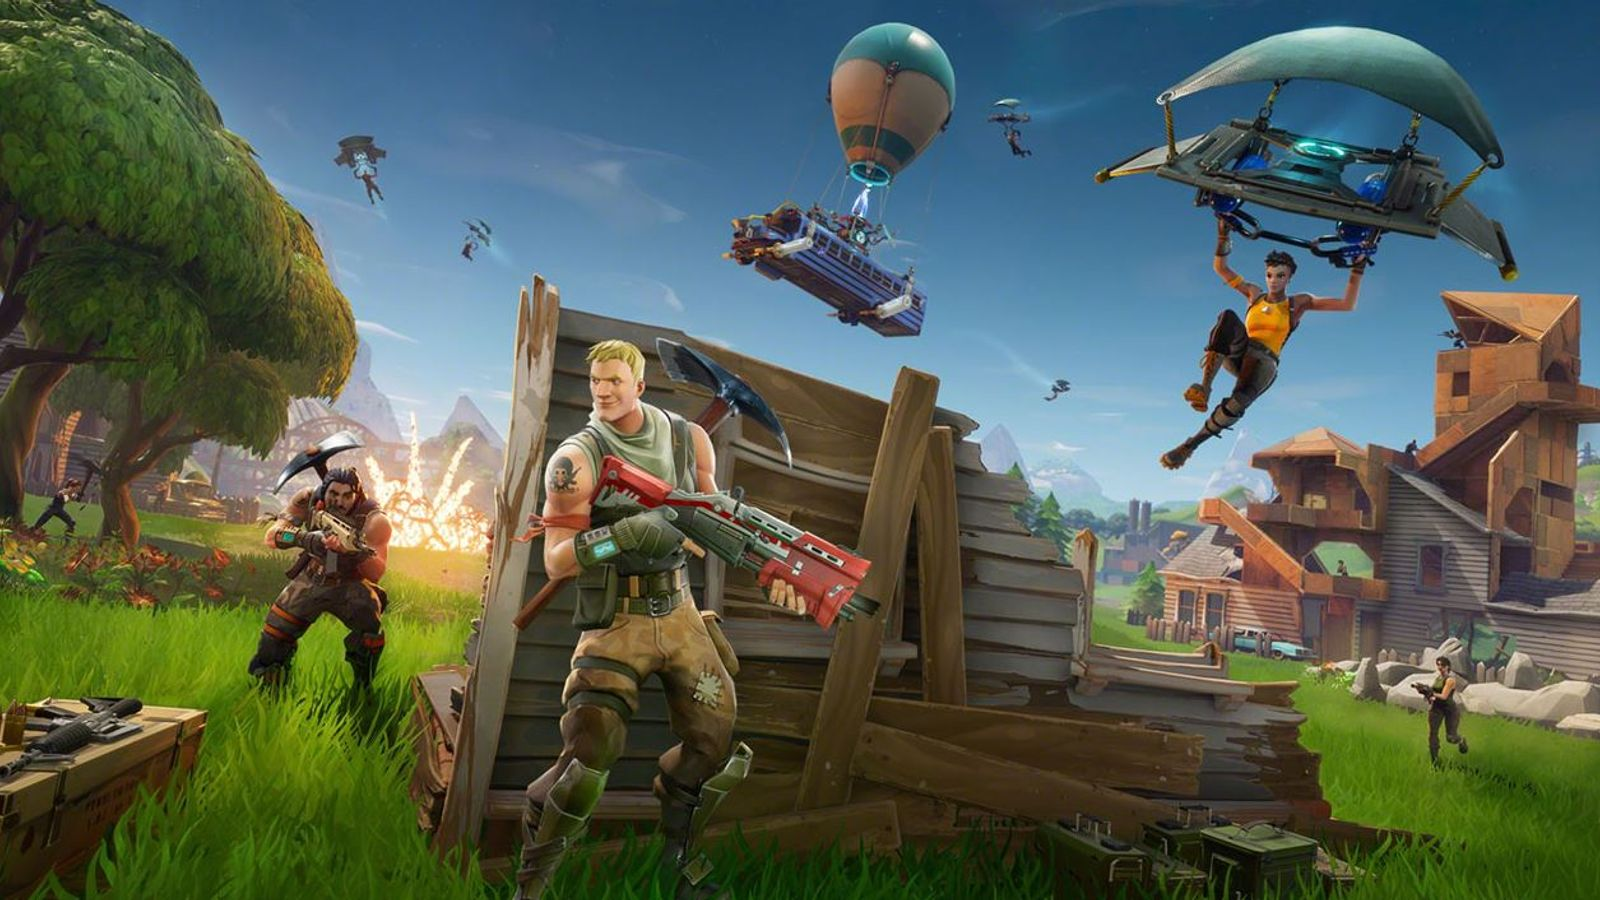 Fortnite Maker Epic Games Sues Youtuber Over Cheating In